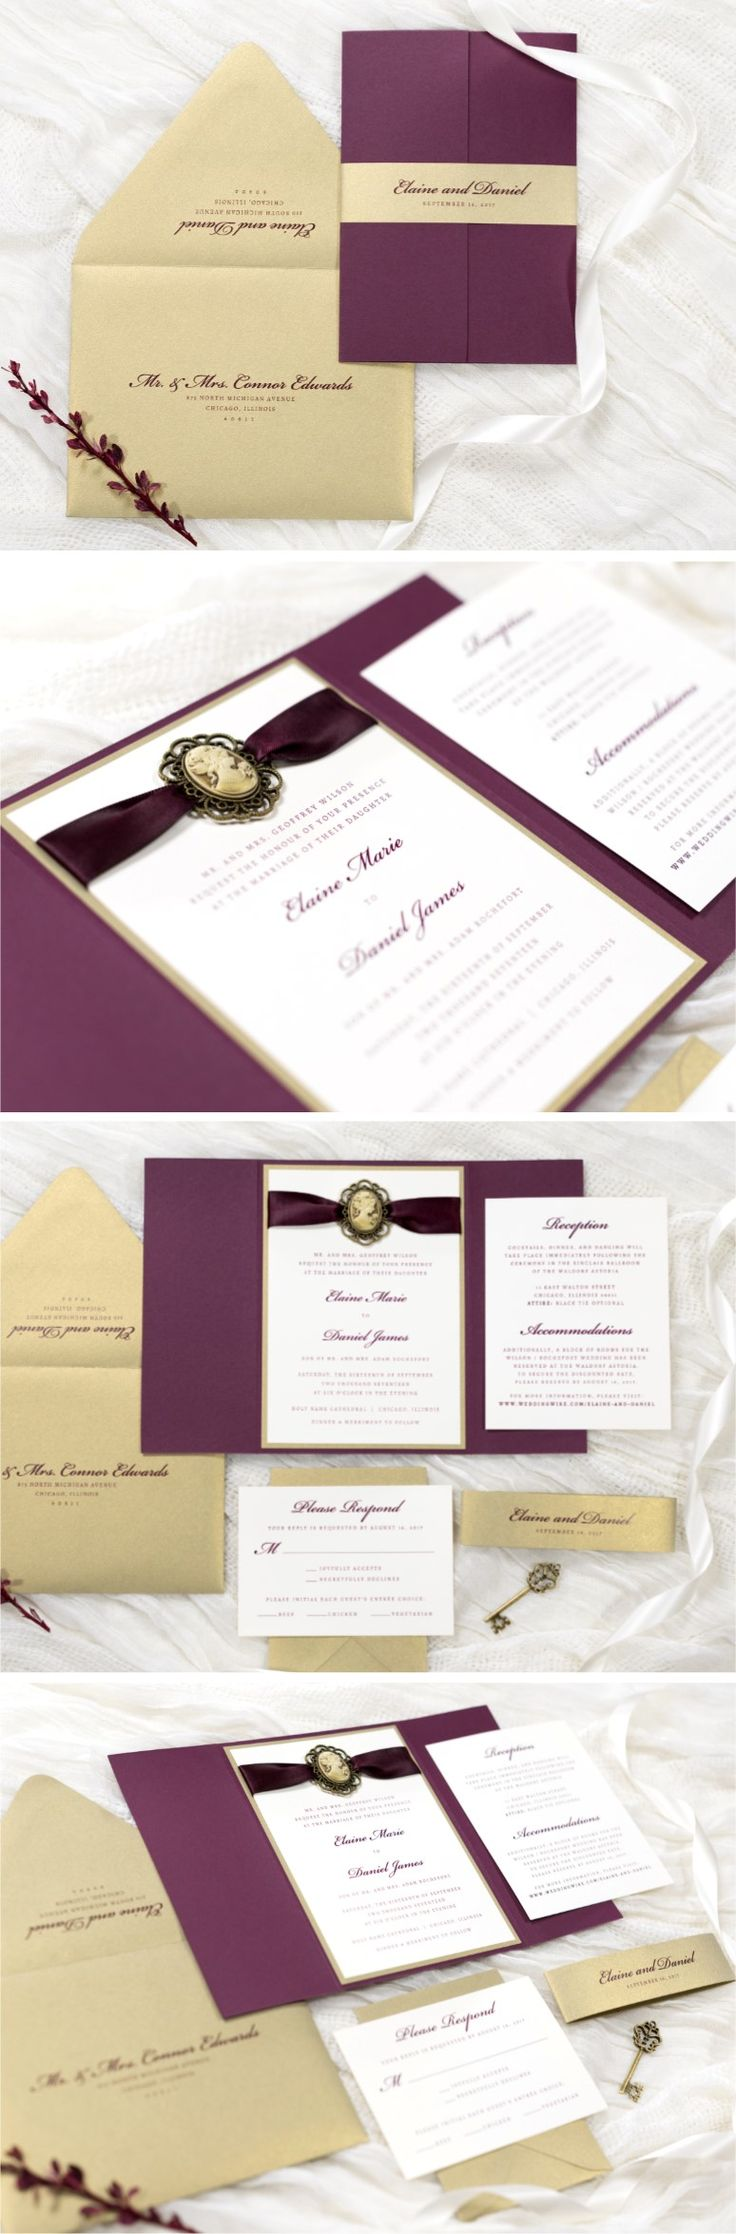 Victorian Style Gatefold Wedding Invitation with Vintage Style Cameo Silhouette Embellishment | Ivory, Gold Leaf, and Burgundy / Wine | The Cameo Suite